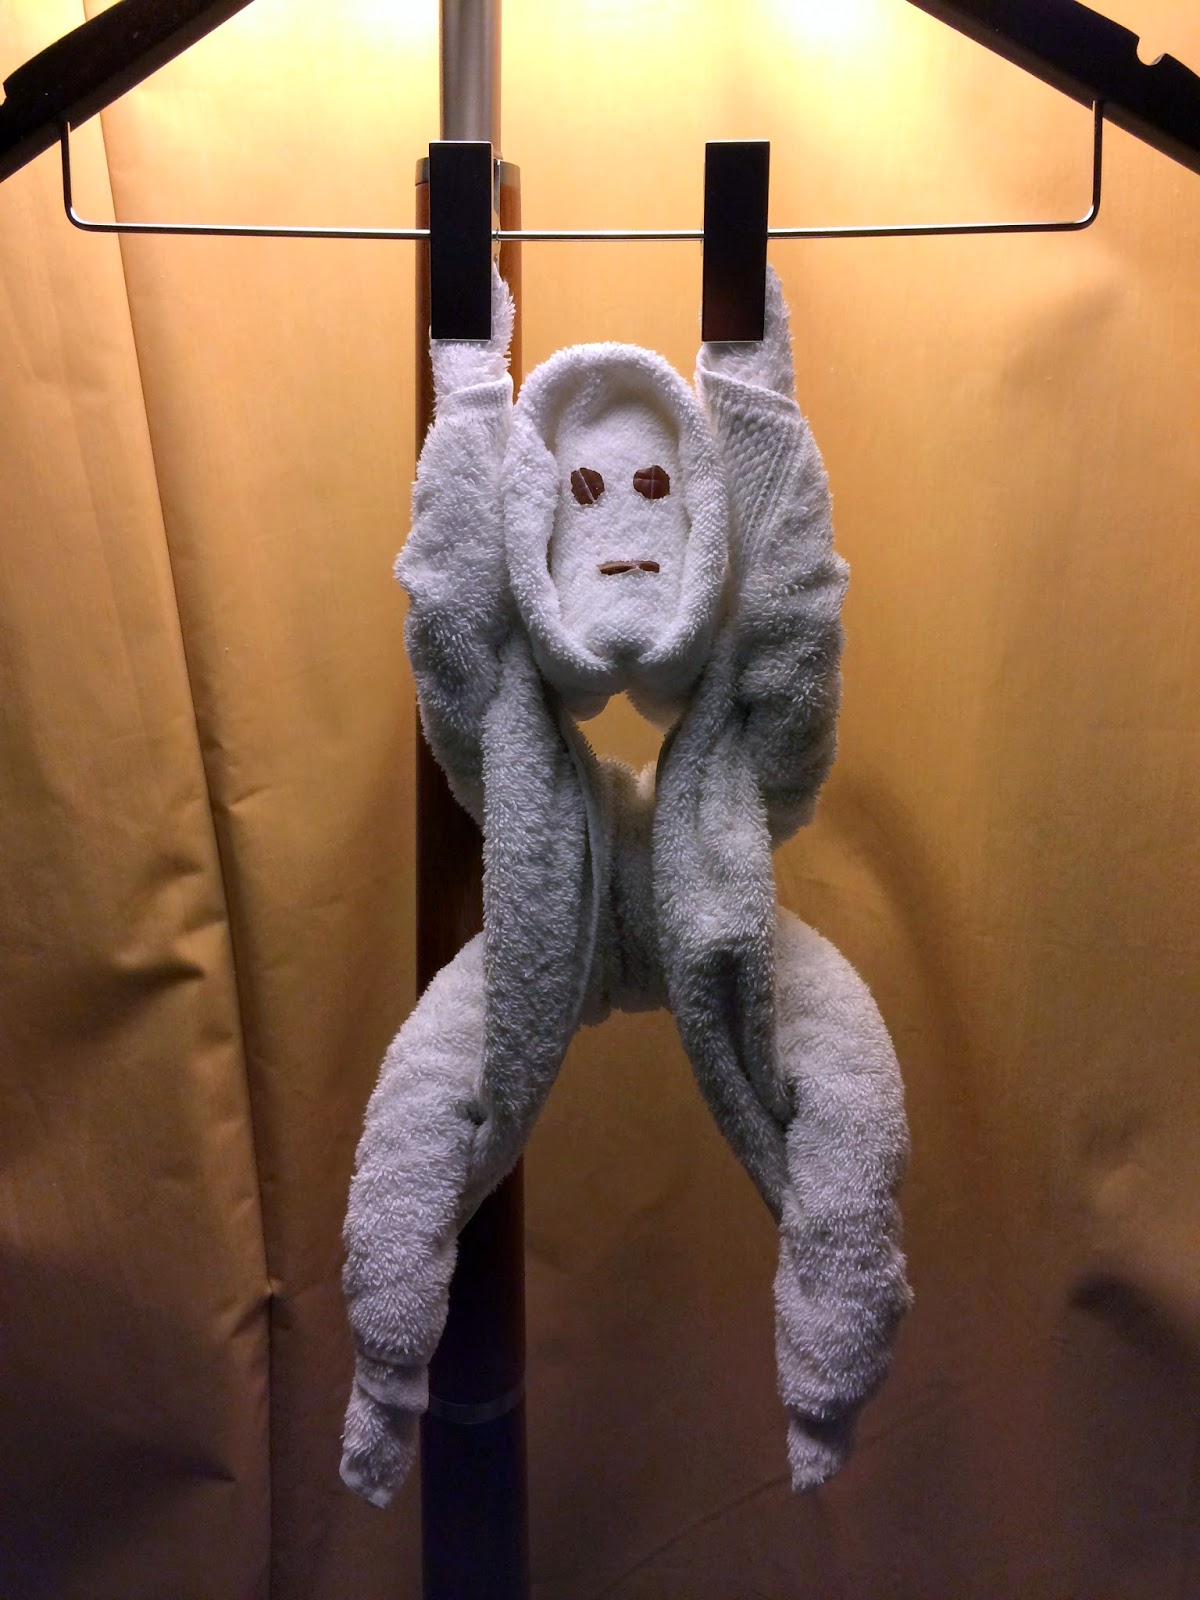 Towel monkey in Doha